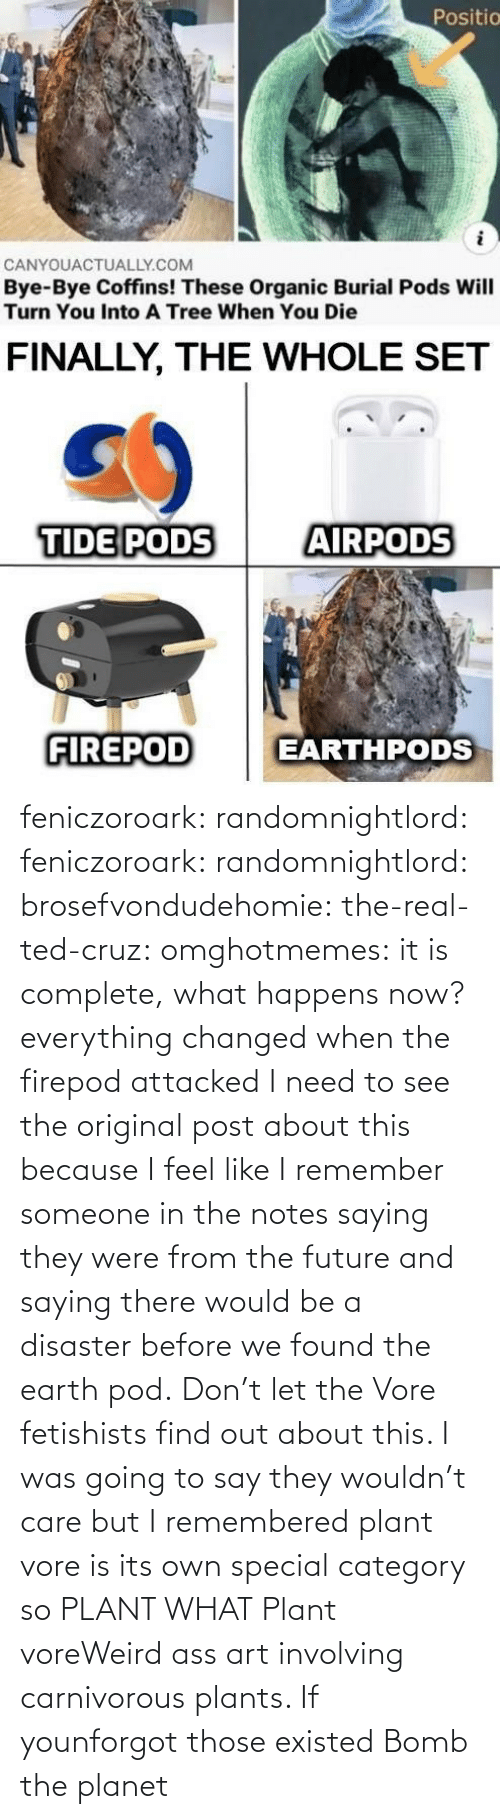 someone: feniczoroark:  randomnightlord:  feniczoroark:  randomnightlord:  brosefvondudehomie: the-real-ted-cruz:  omghotmemes: it is complete, what happens now? everything changed when the firepod attacked    I need to see the original post about this because I feel like I remember someone in the notes saying they were from the future and saying there would be a disaster before we found the earth pod.    Don't let the Vore fetishists find out about this.    I was going to say they wouldn't care but I remembered plant vore is its own special category so   PLANT WHAT   Plant voreWeird ass art involving carnivorous plants. If younforgot those existed   Bomb the planet